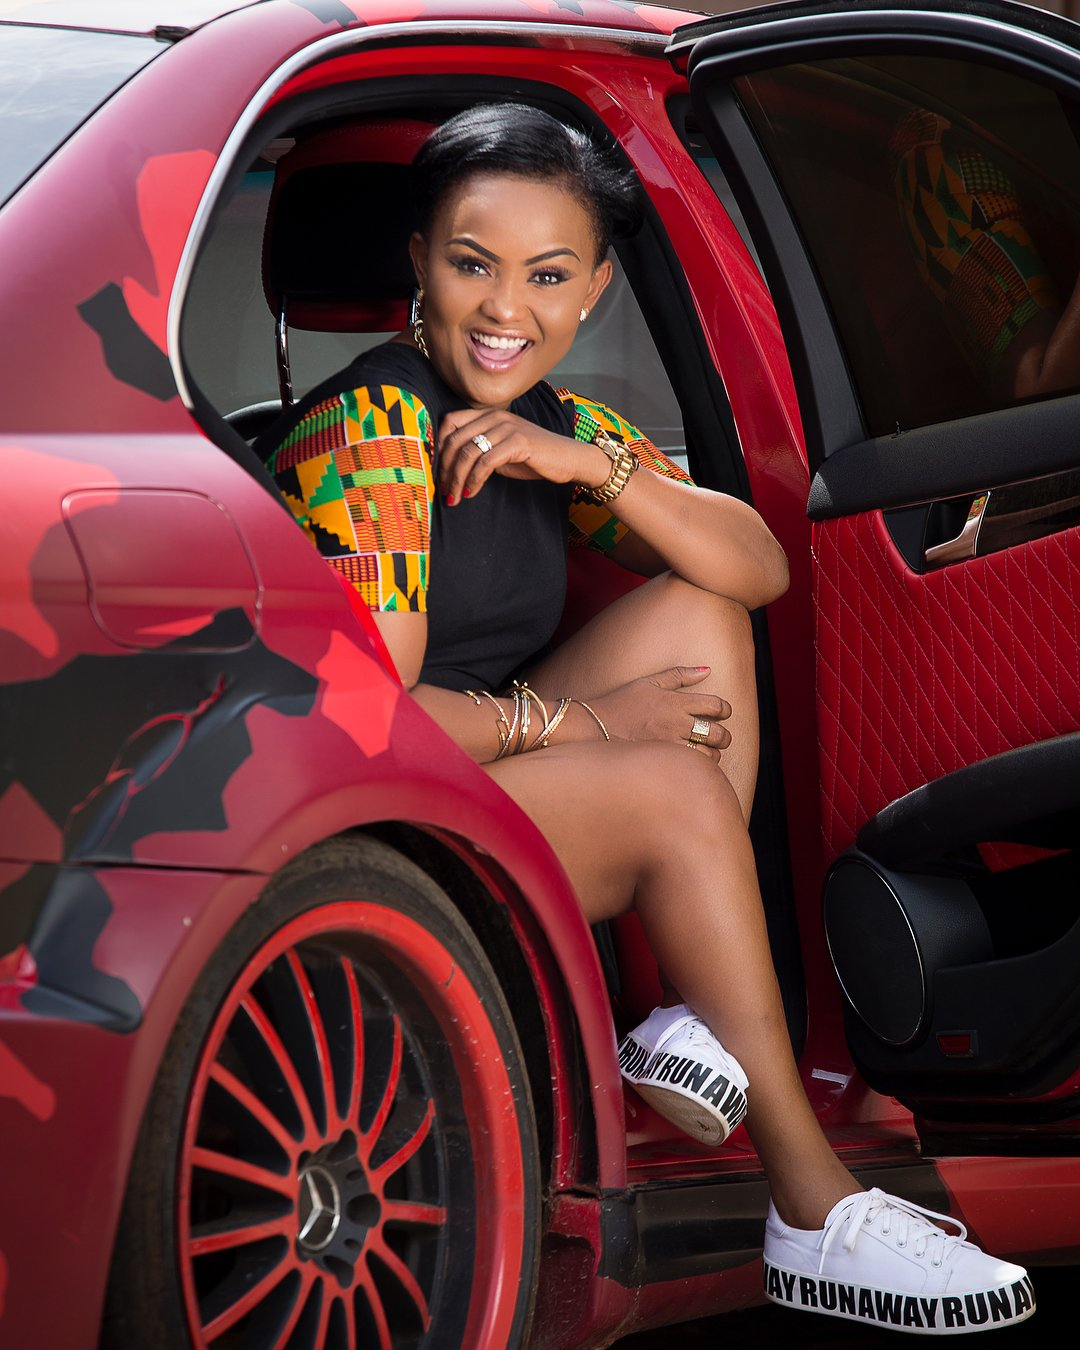 Nana Ama McBrown Matches Her Clothes With Her Car